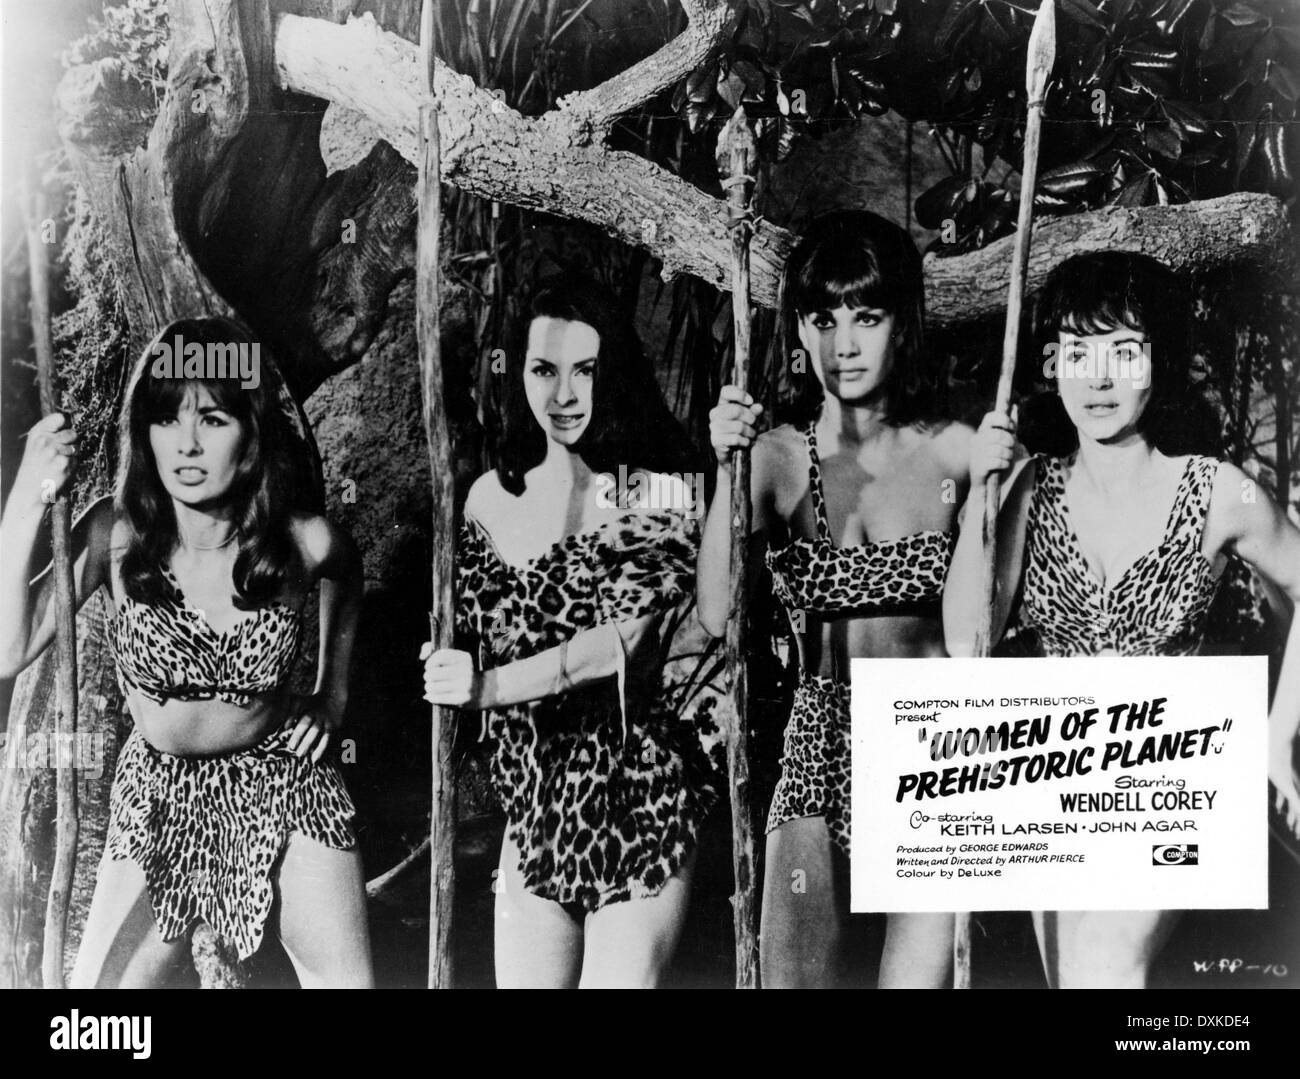 WOMEN OF THE PREHISTORIC PLANET (US1966) - Stock Image